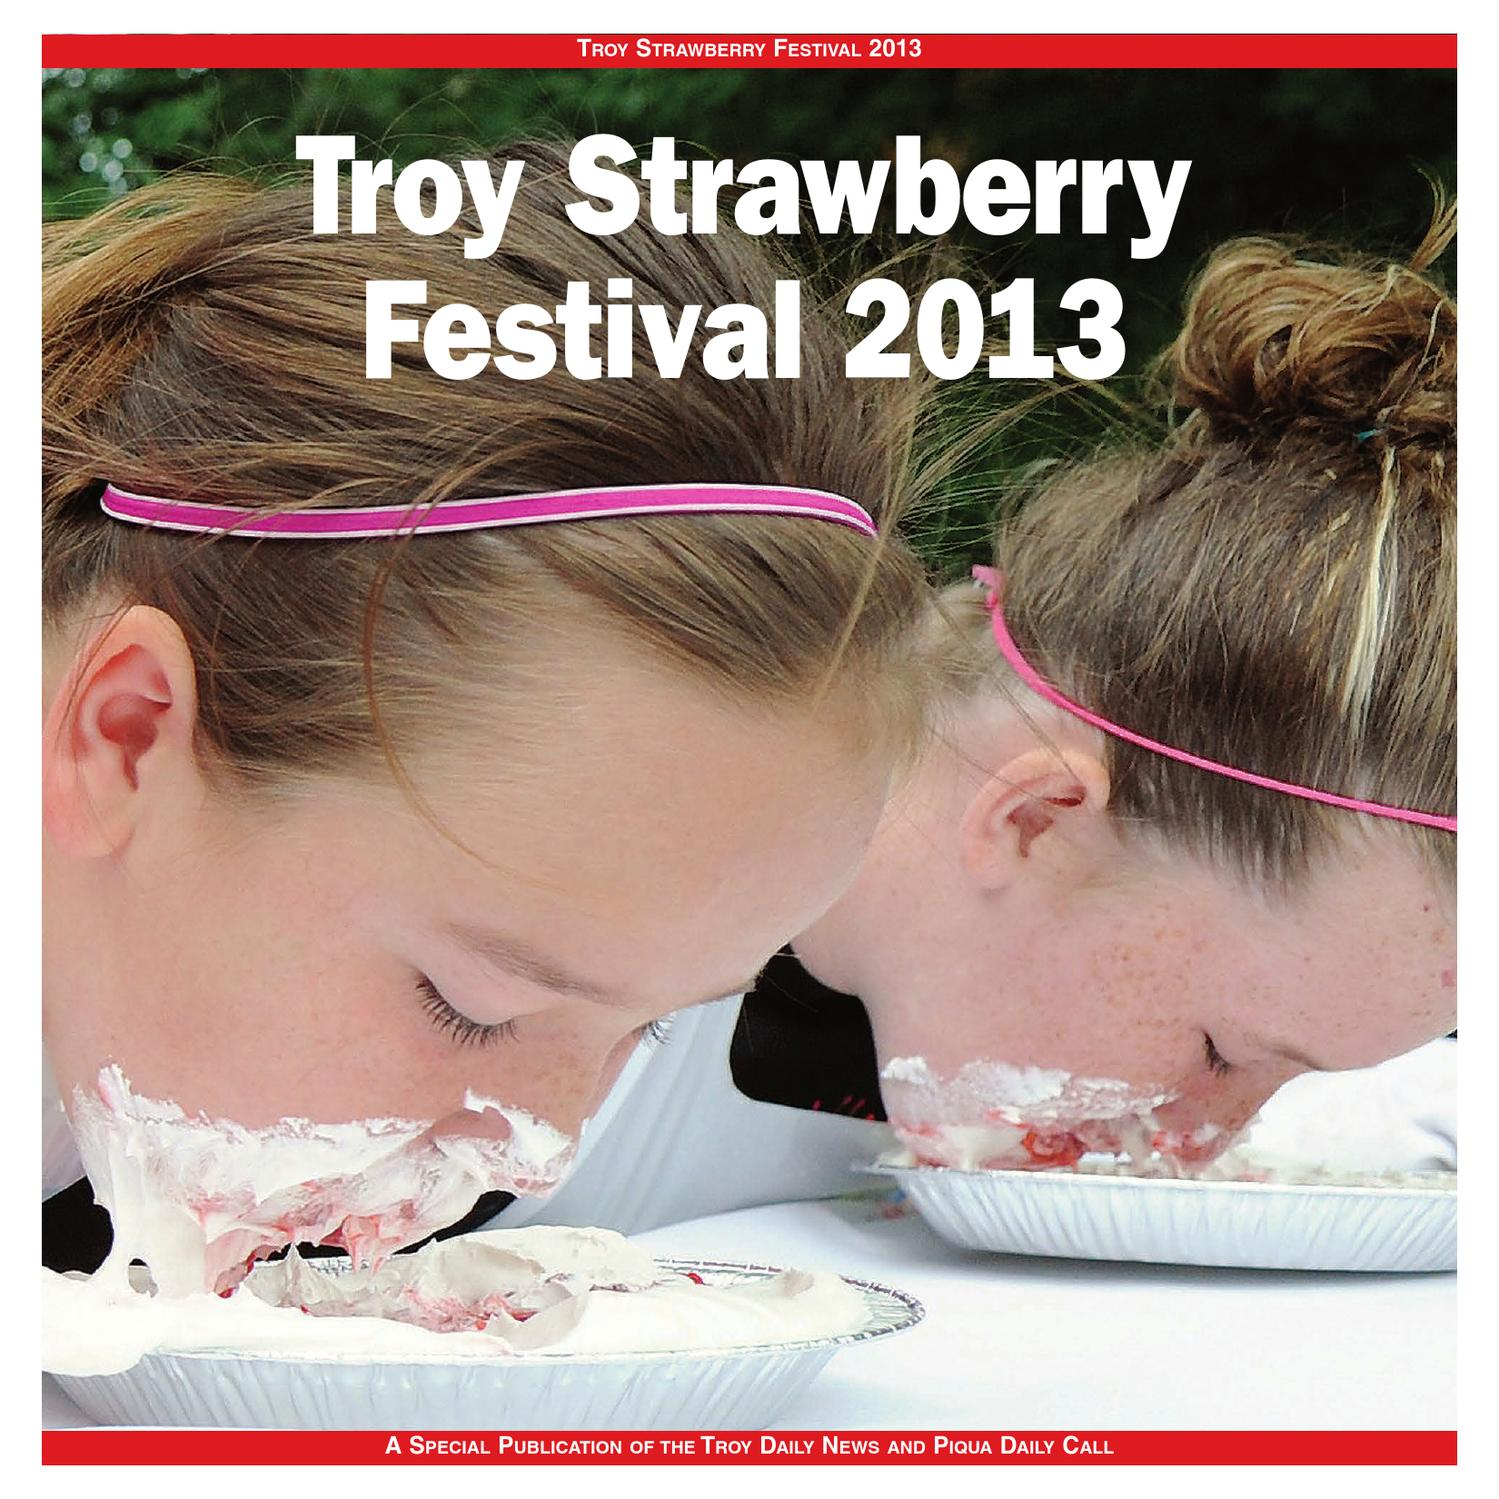 troy strawberry festival 10k